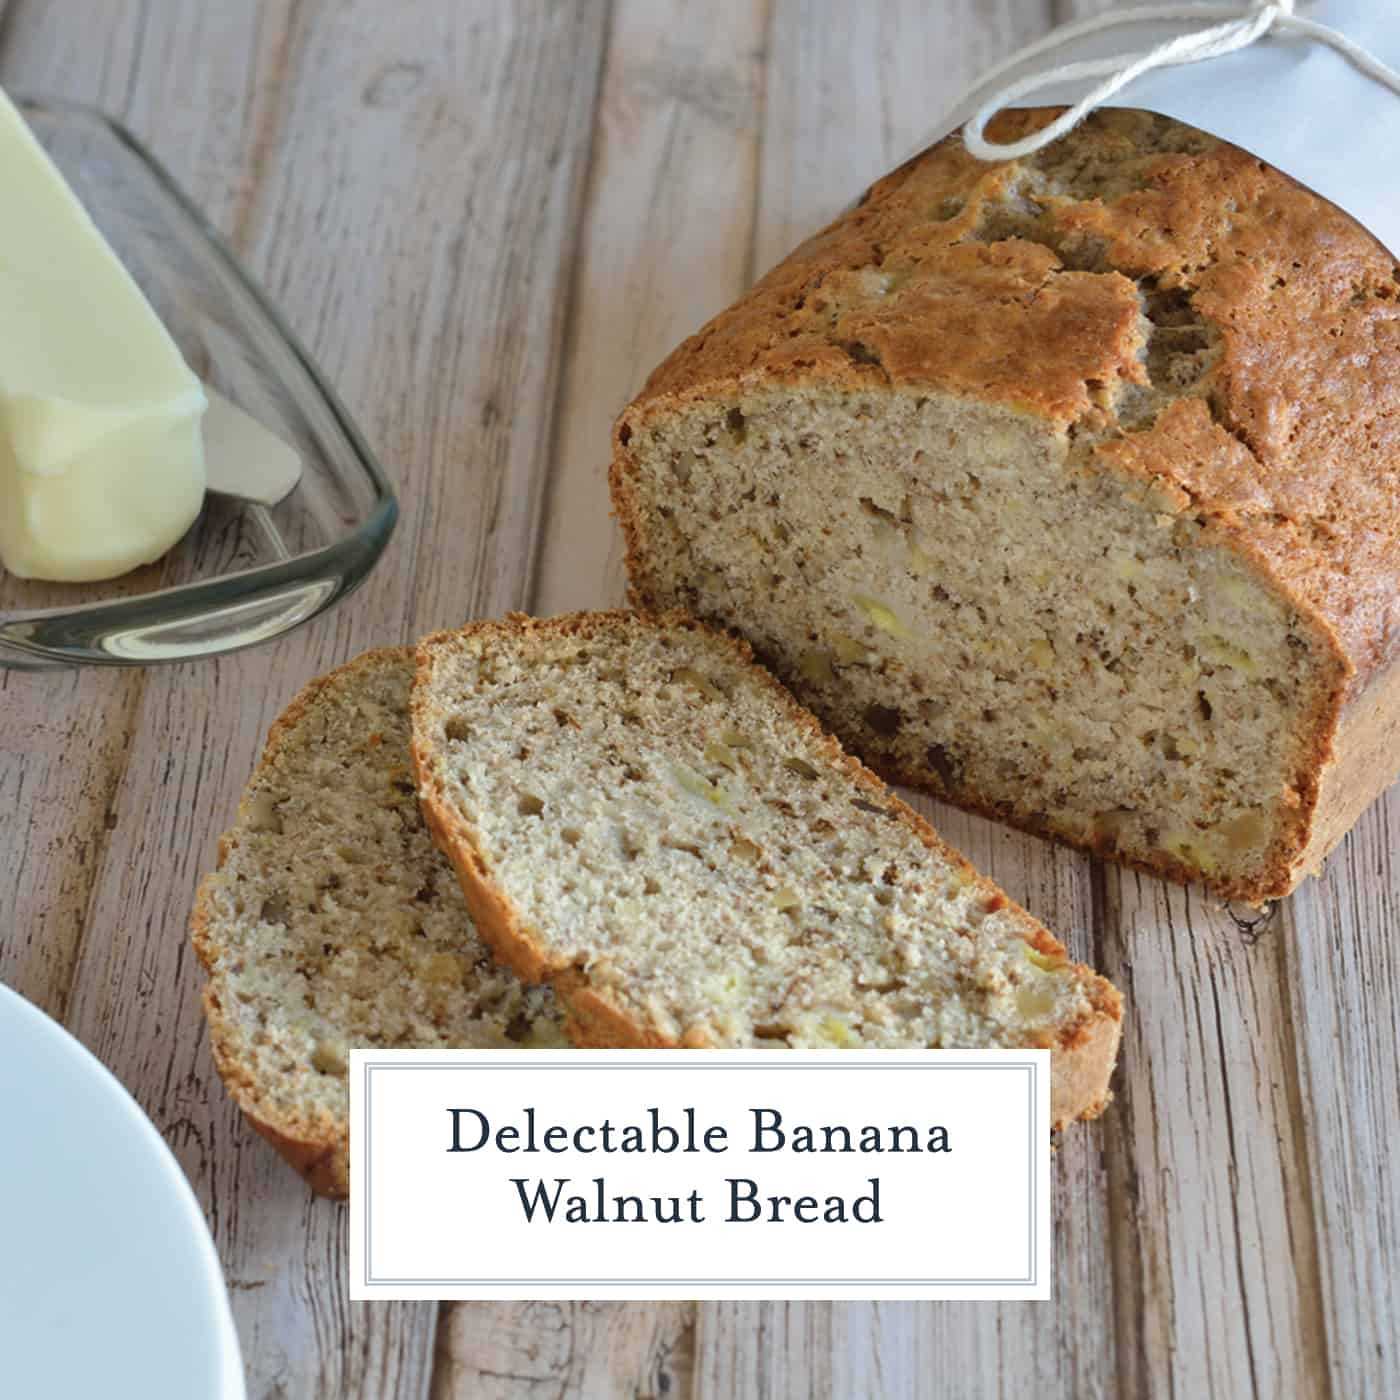 Classic Banana Walnut bread is always a winning way to use up ripe bananas. Fresh out of the oven or freezer friendly, this is the best banana bread recipe out there!#bananabread #bananawalnutbread www.savoryexperiments.com